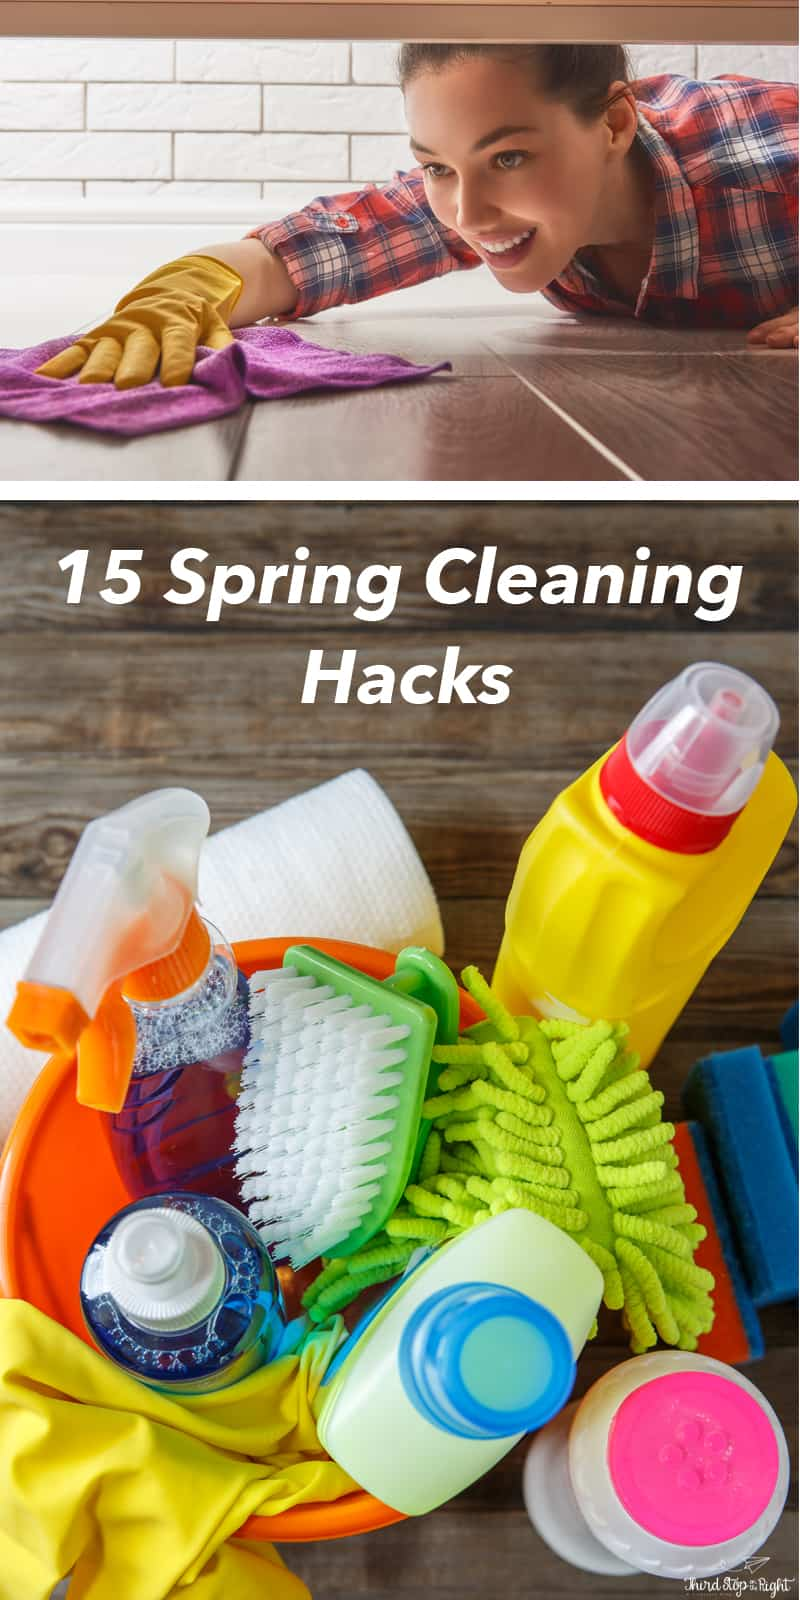 These 15 cleaning hacks will make your life so much easier when it comes to spring (or everyday) cleaning!